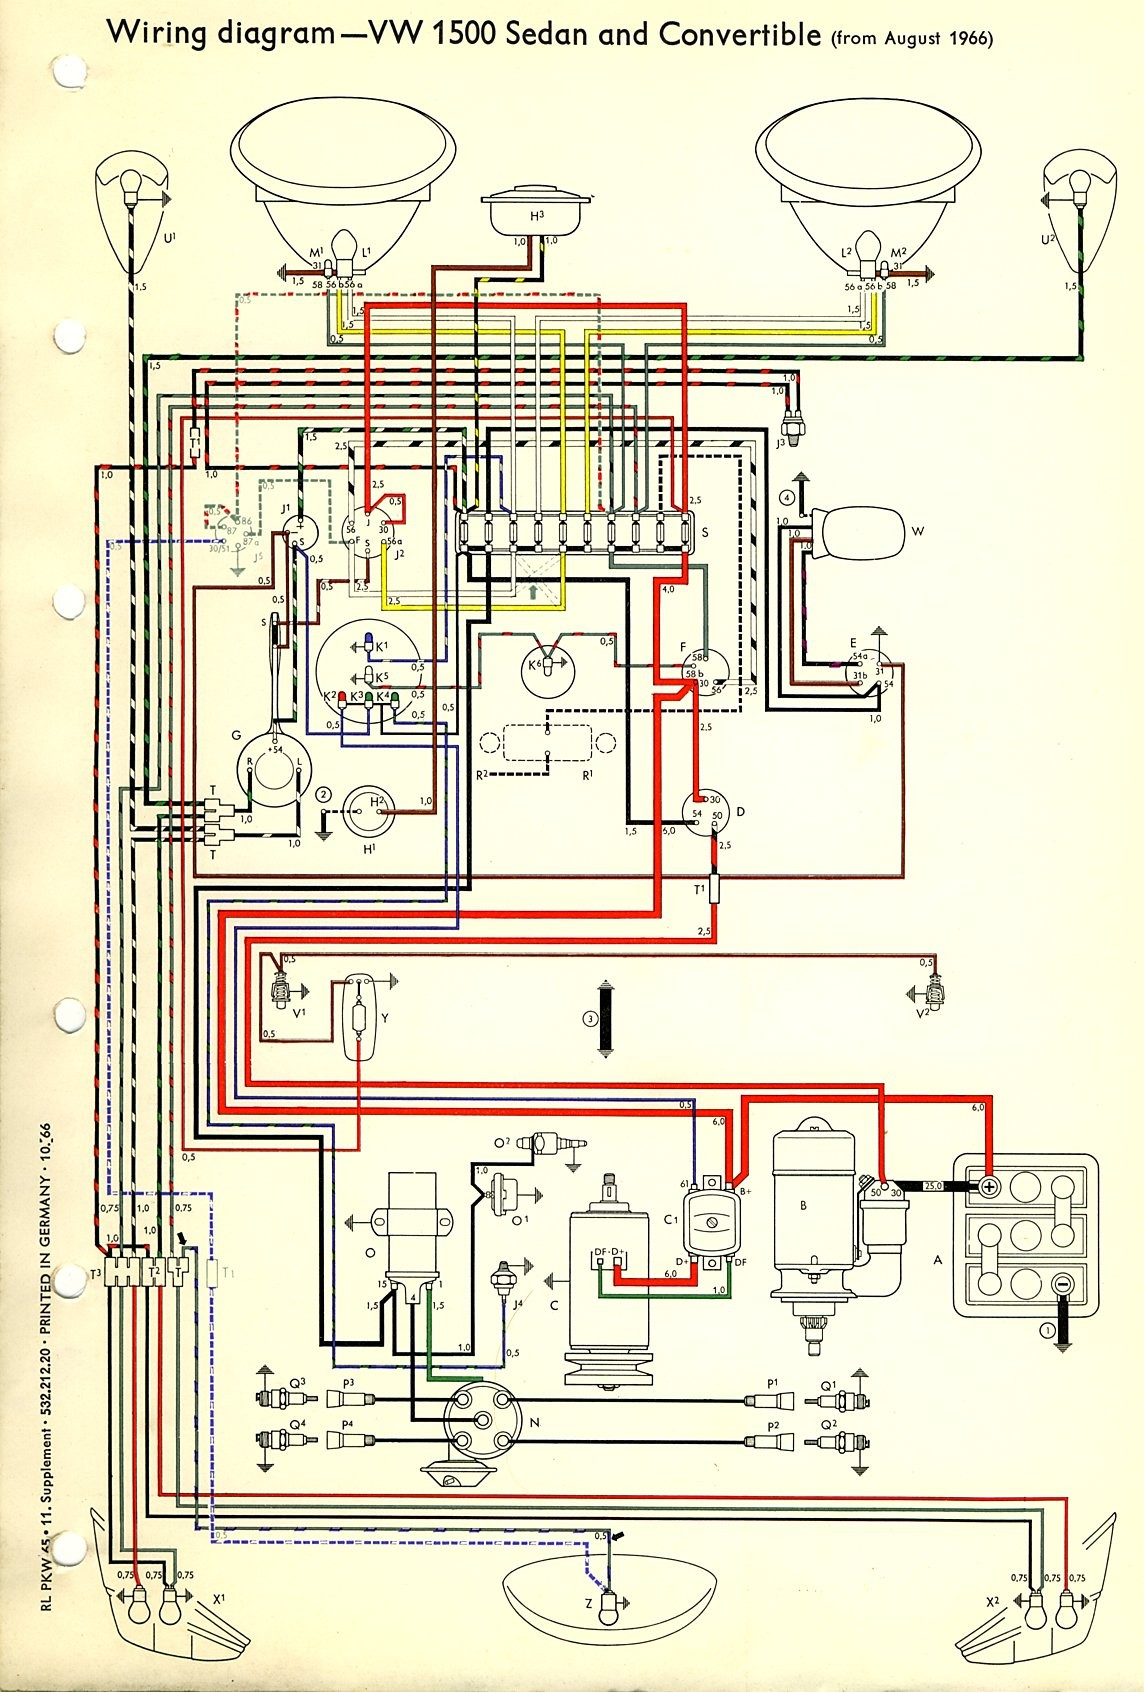 Wire vw beetle engine diagrams best site wiring harness